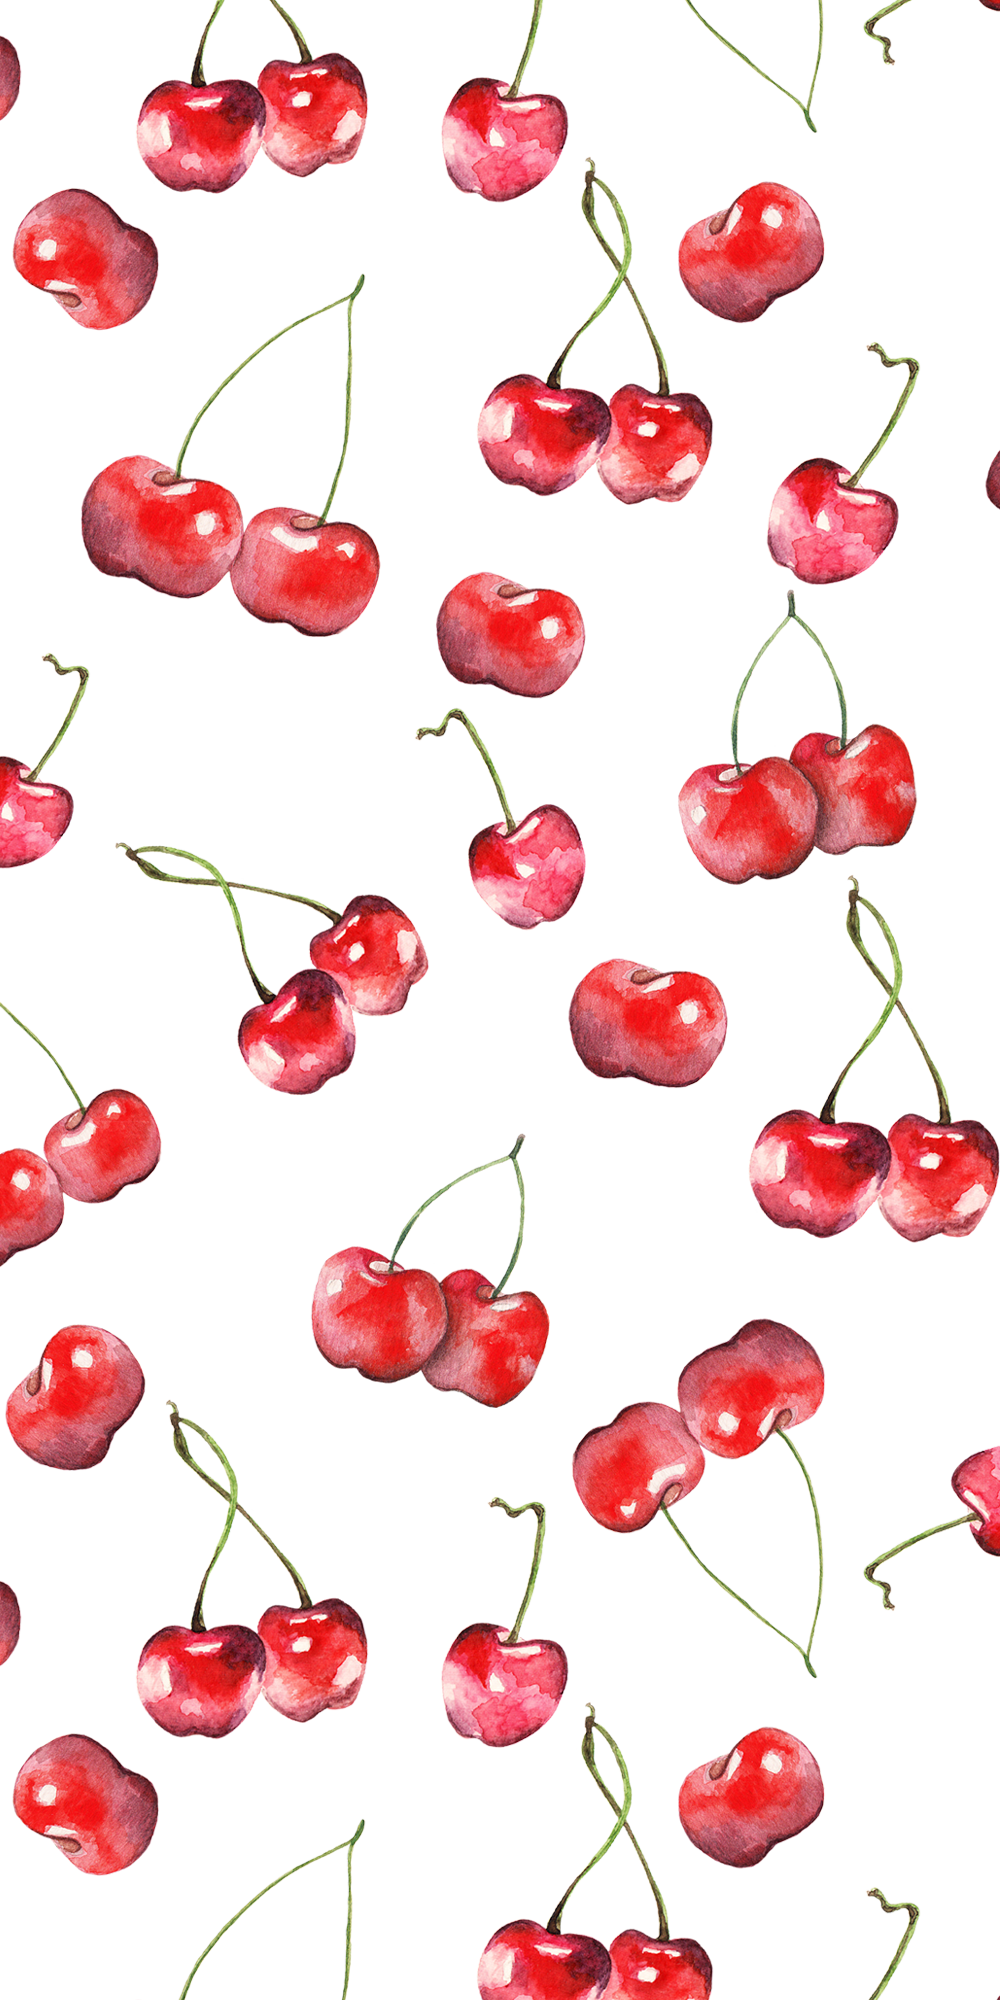 Cherry Iphone Wallpapers Top Free Cherry Iphone Backgrounds Wallpaperaccess